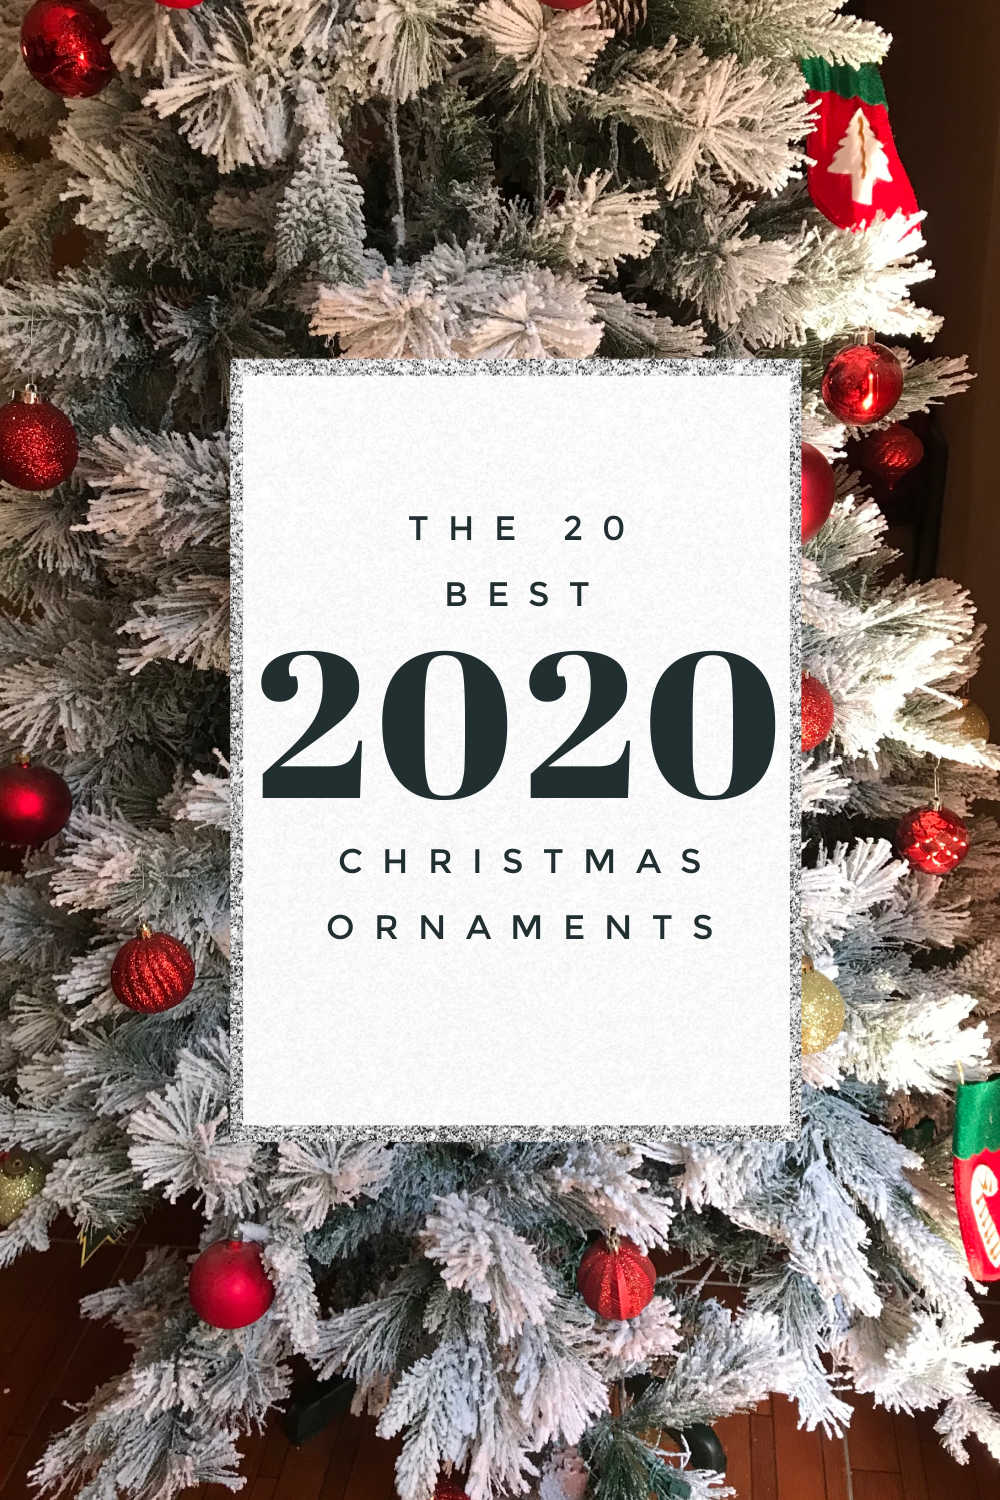 2020 Christmas ornaments text overlay